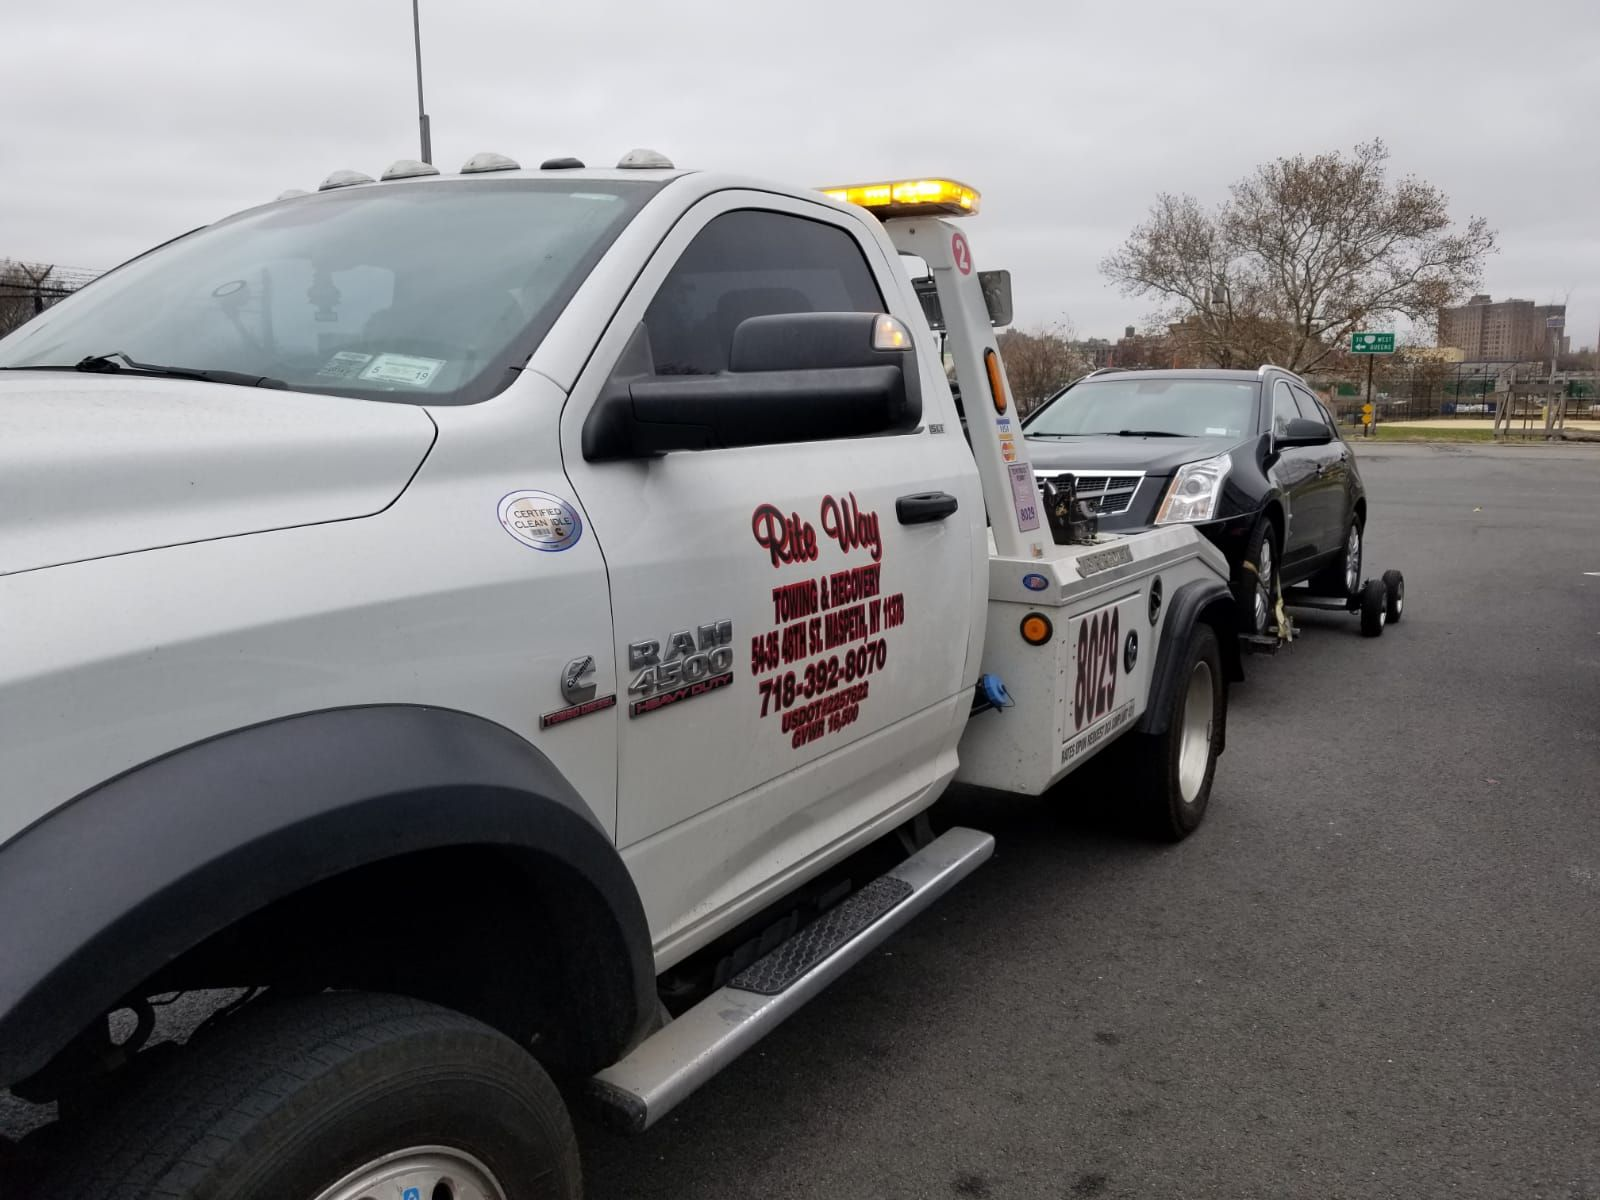 Nyc Roadside Assistance Services Towing Service Roadside Assistance Towing And Recovery